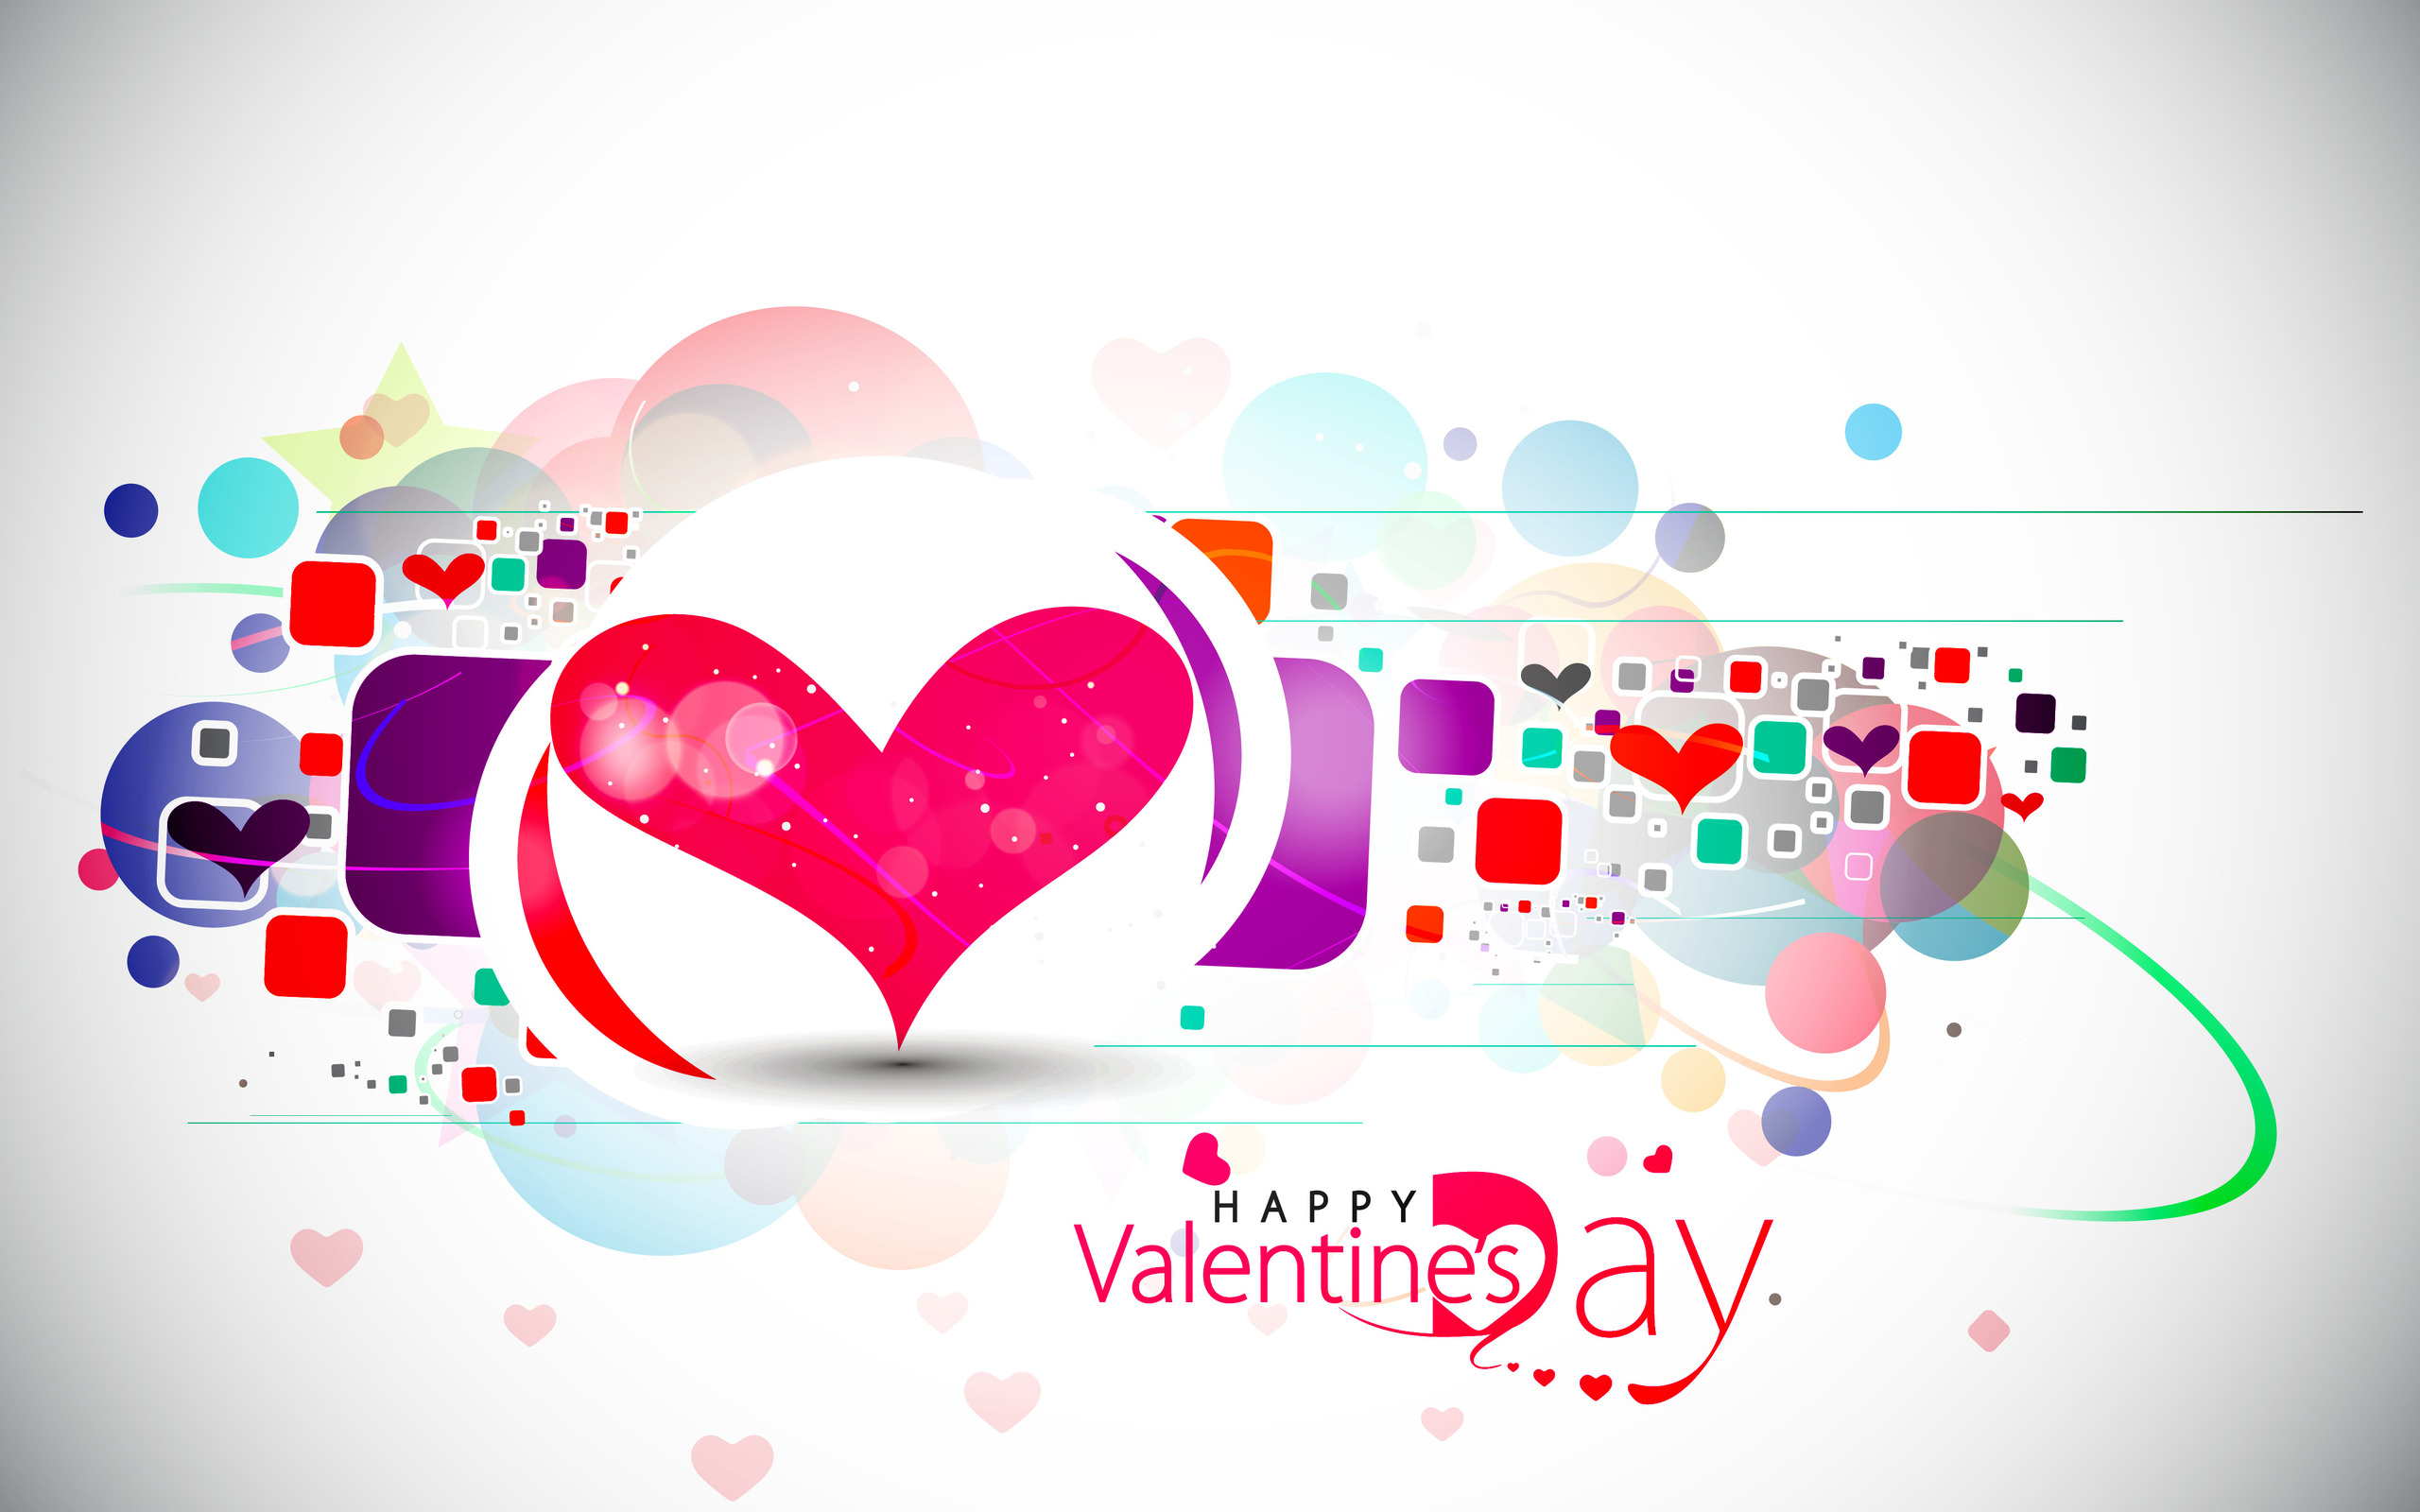 Happy Valentines Day Wallpapers HD Wallpapers 2560x1600